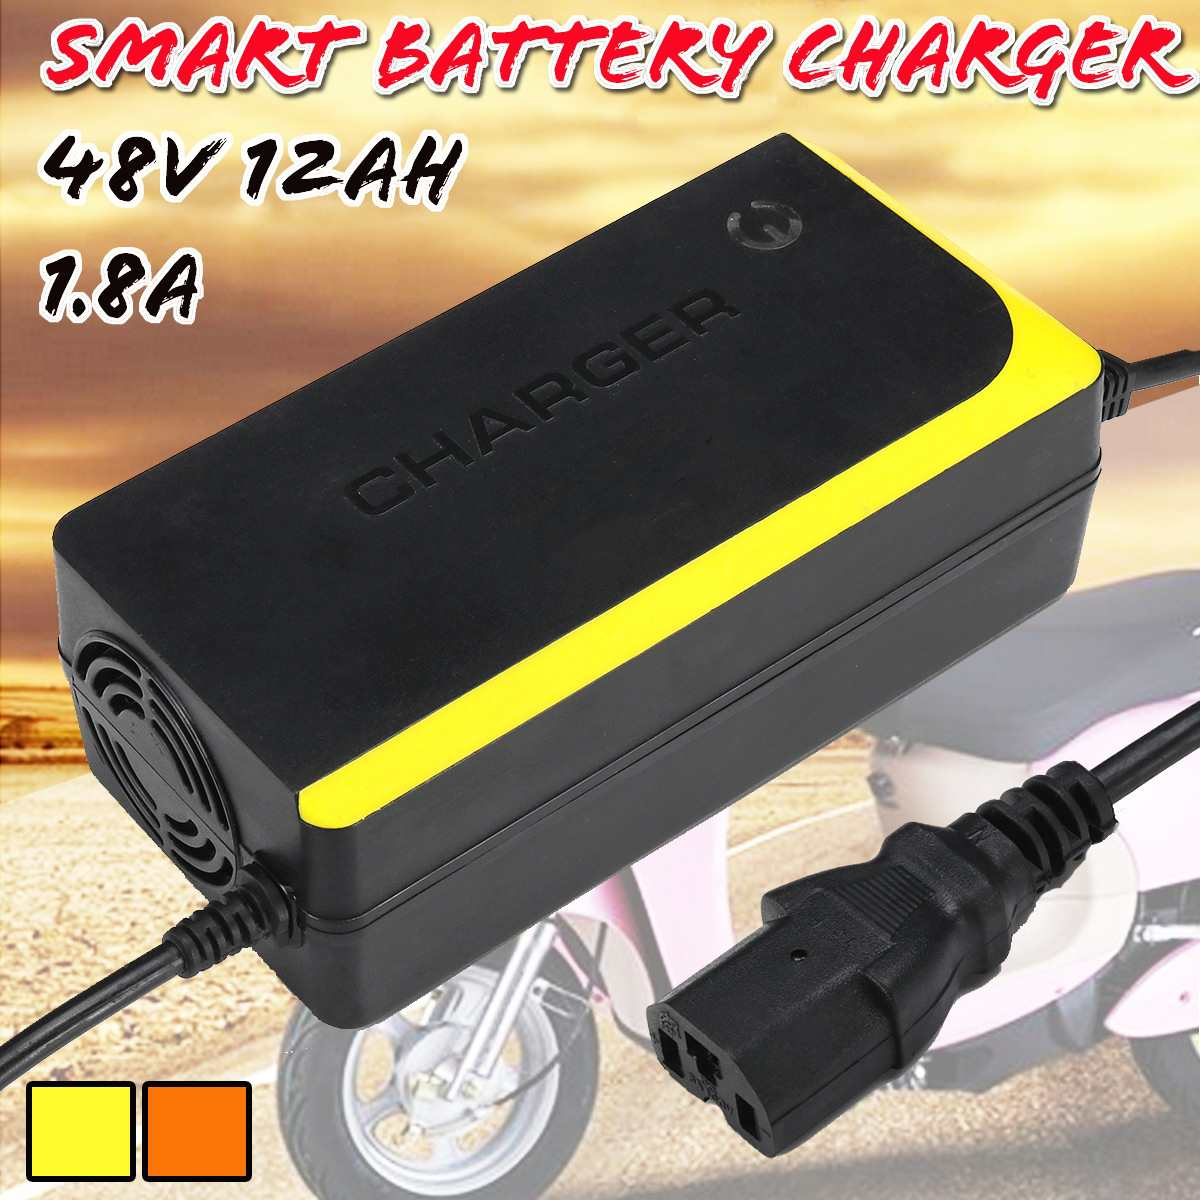 48V 12AH Electric Bicycle Bike Scooters Motorcycle Charger Smart  Supply Lead Acid Battery Charger 48V 1.8A 12AH